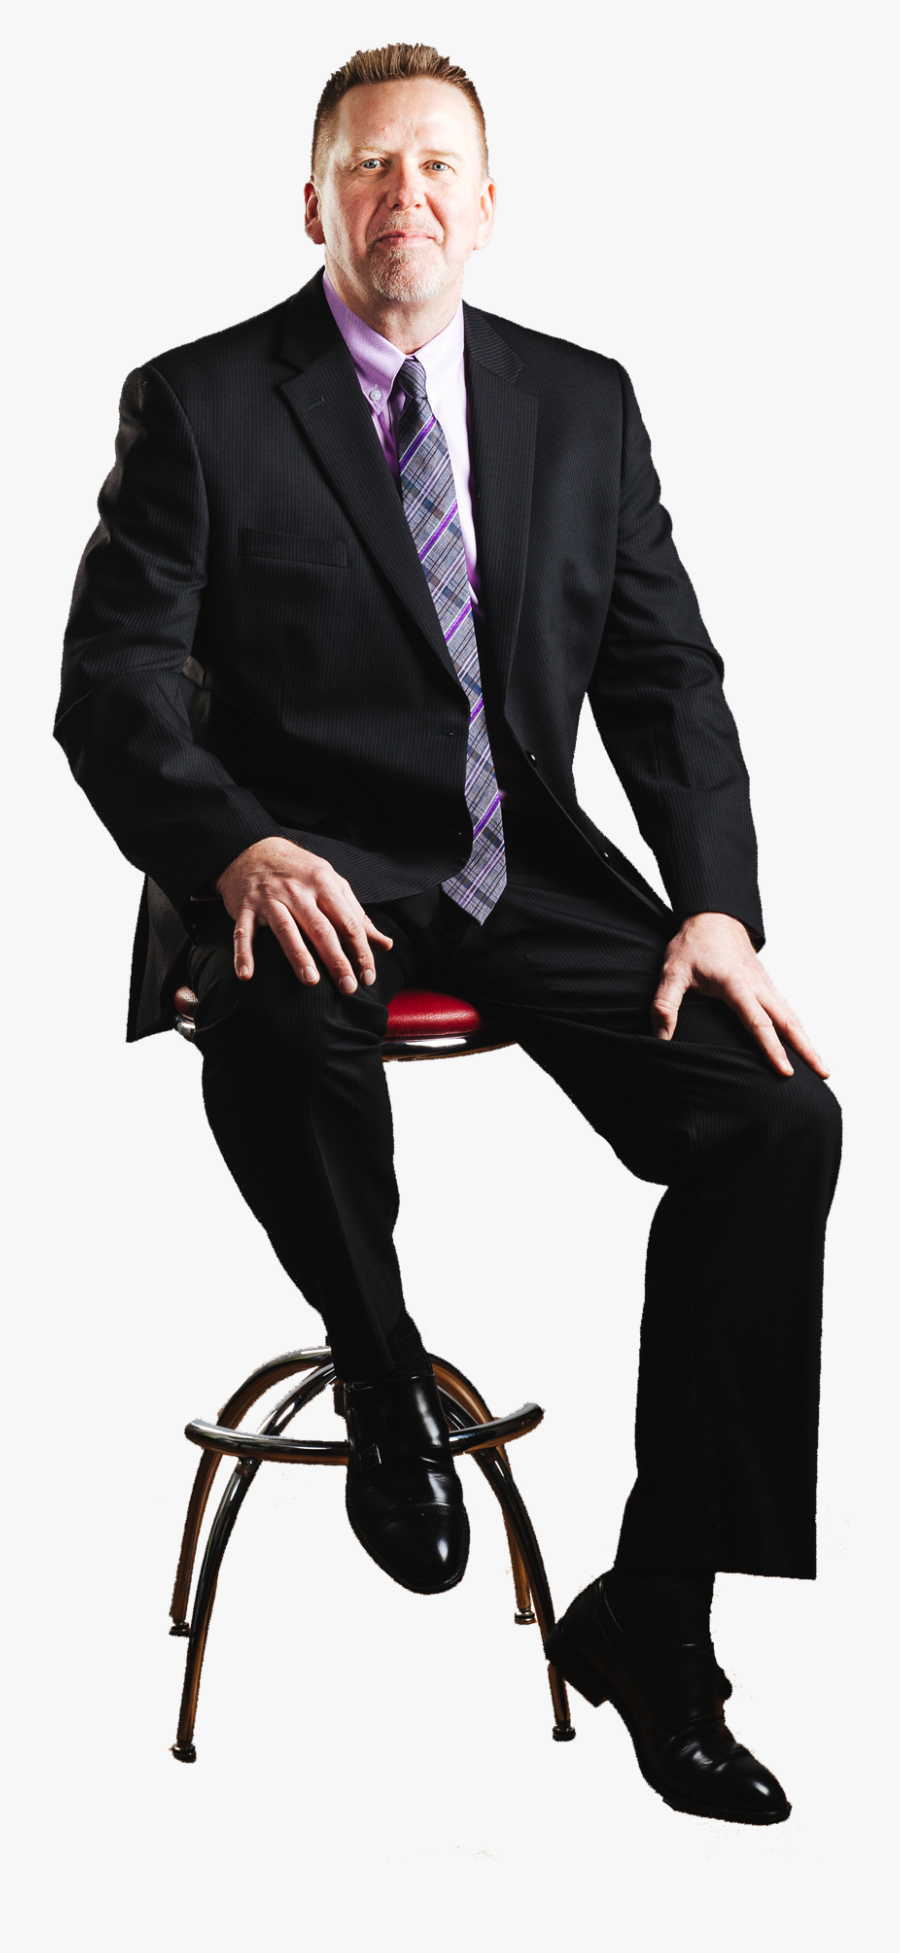 Person Sitting In Chair Png.